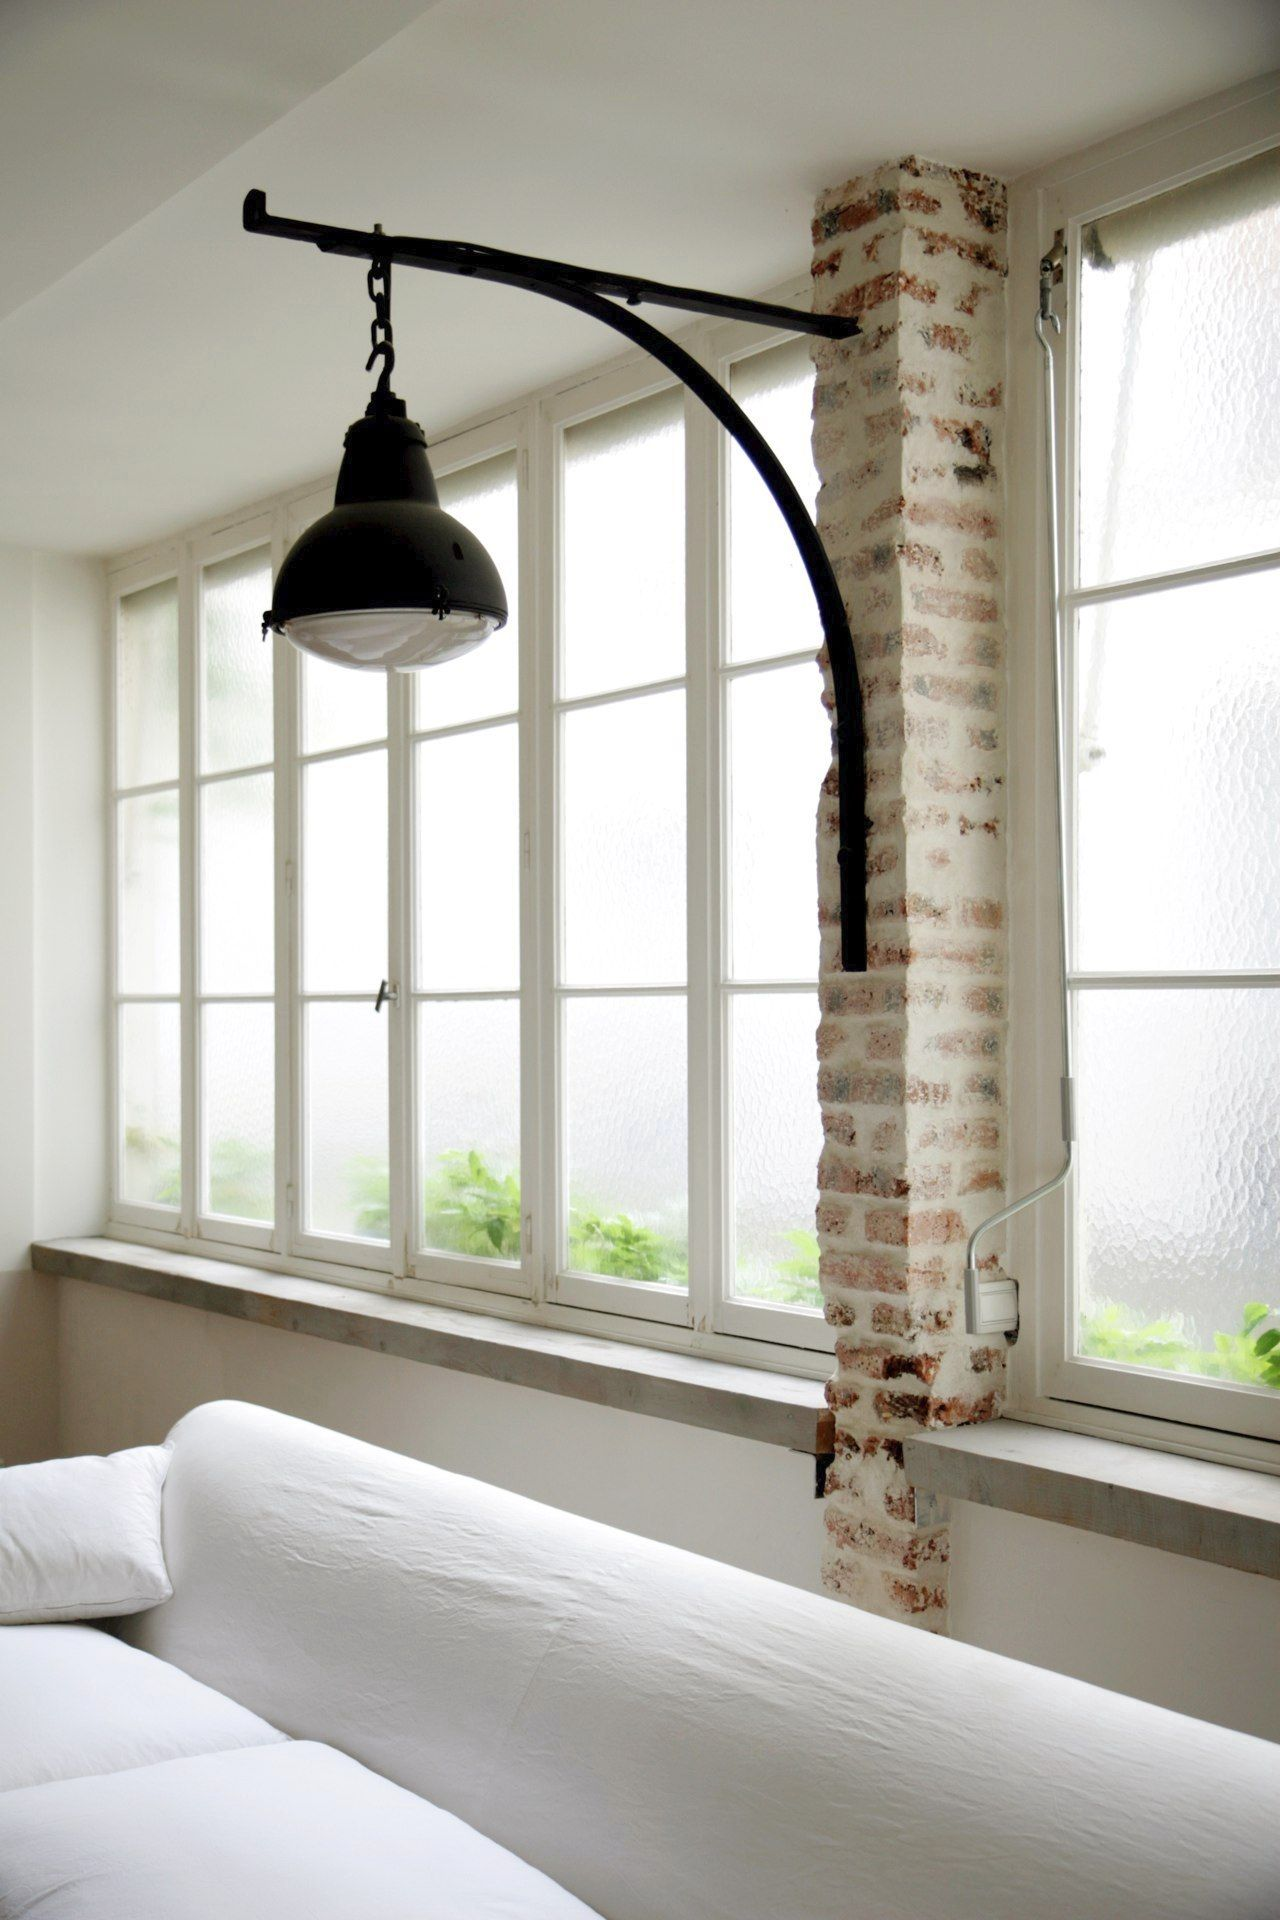 love this indoor lightin idea! could also be mounted on a wood post or thick board against wall.